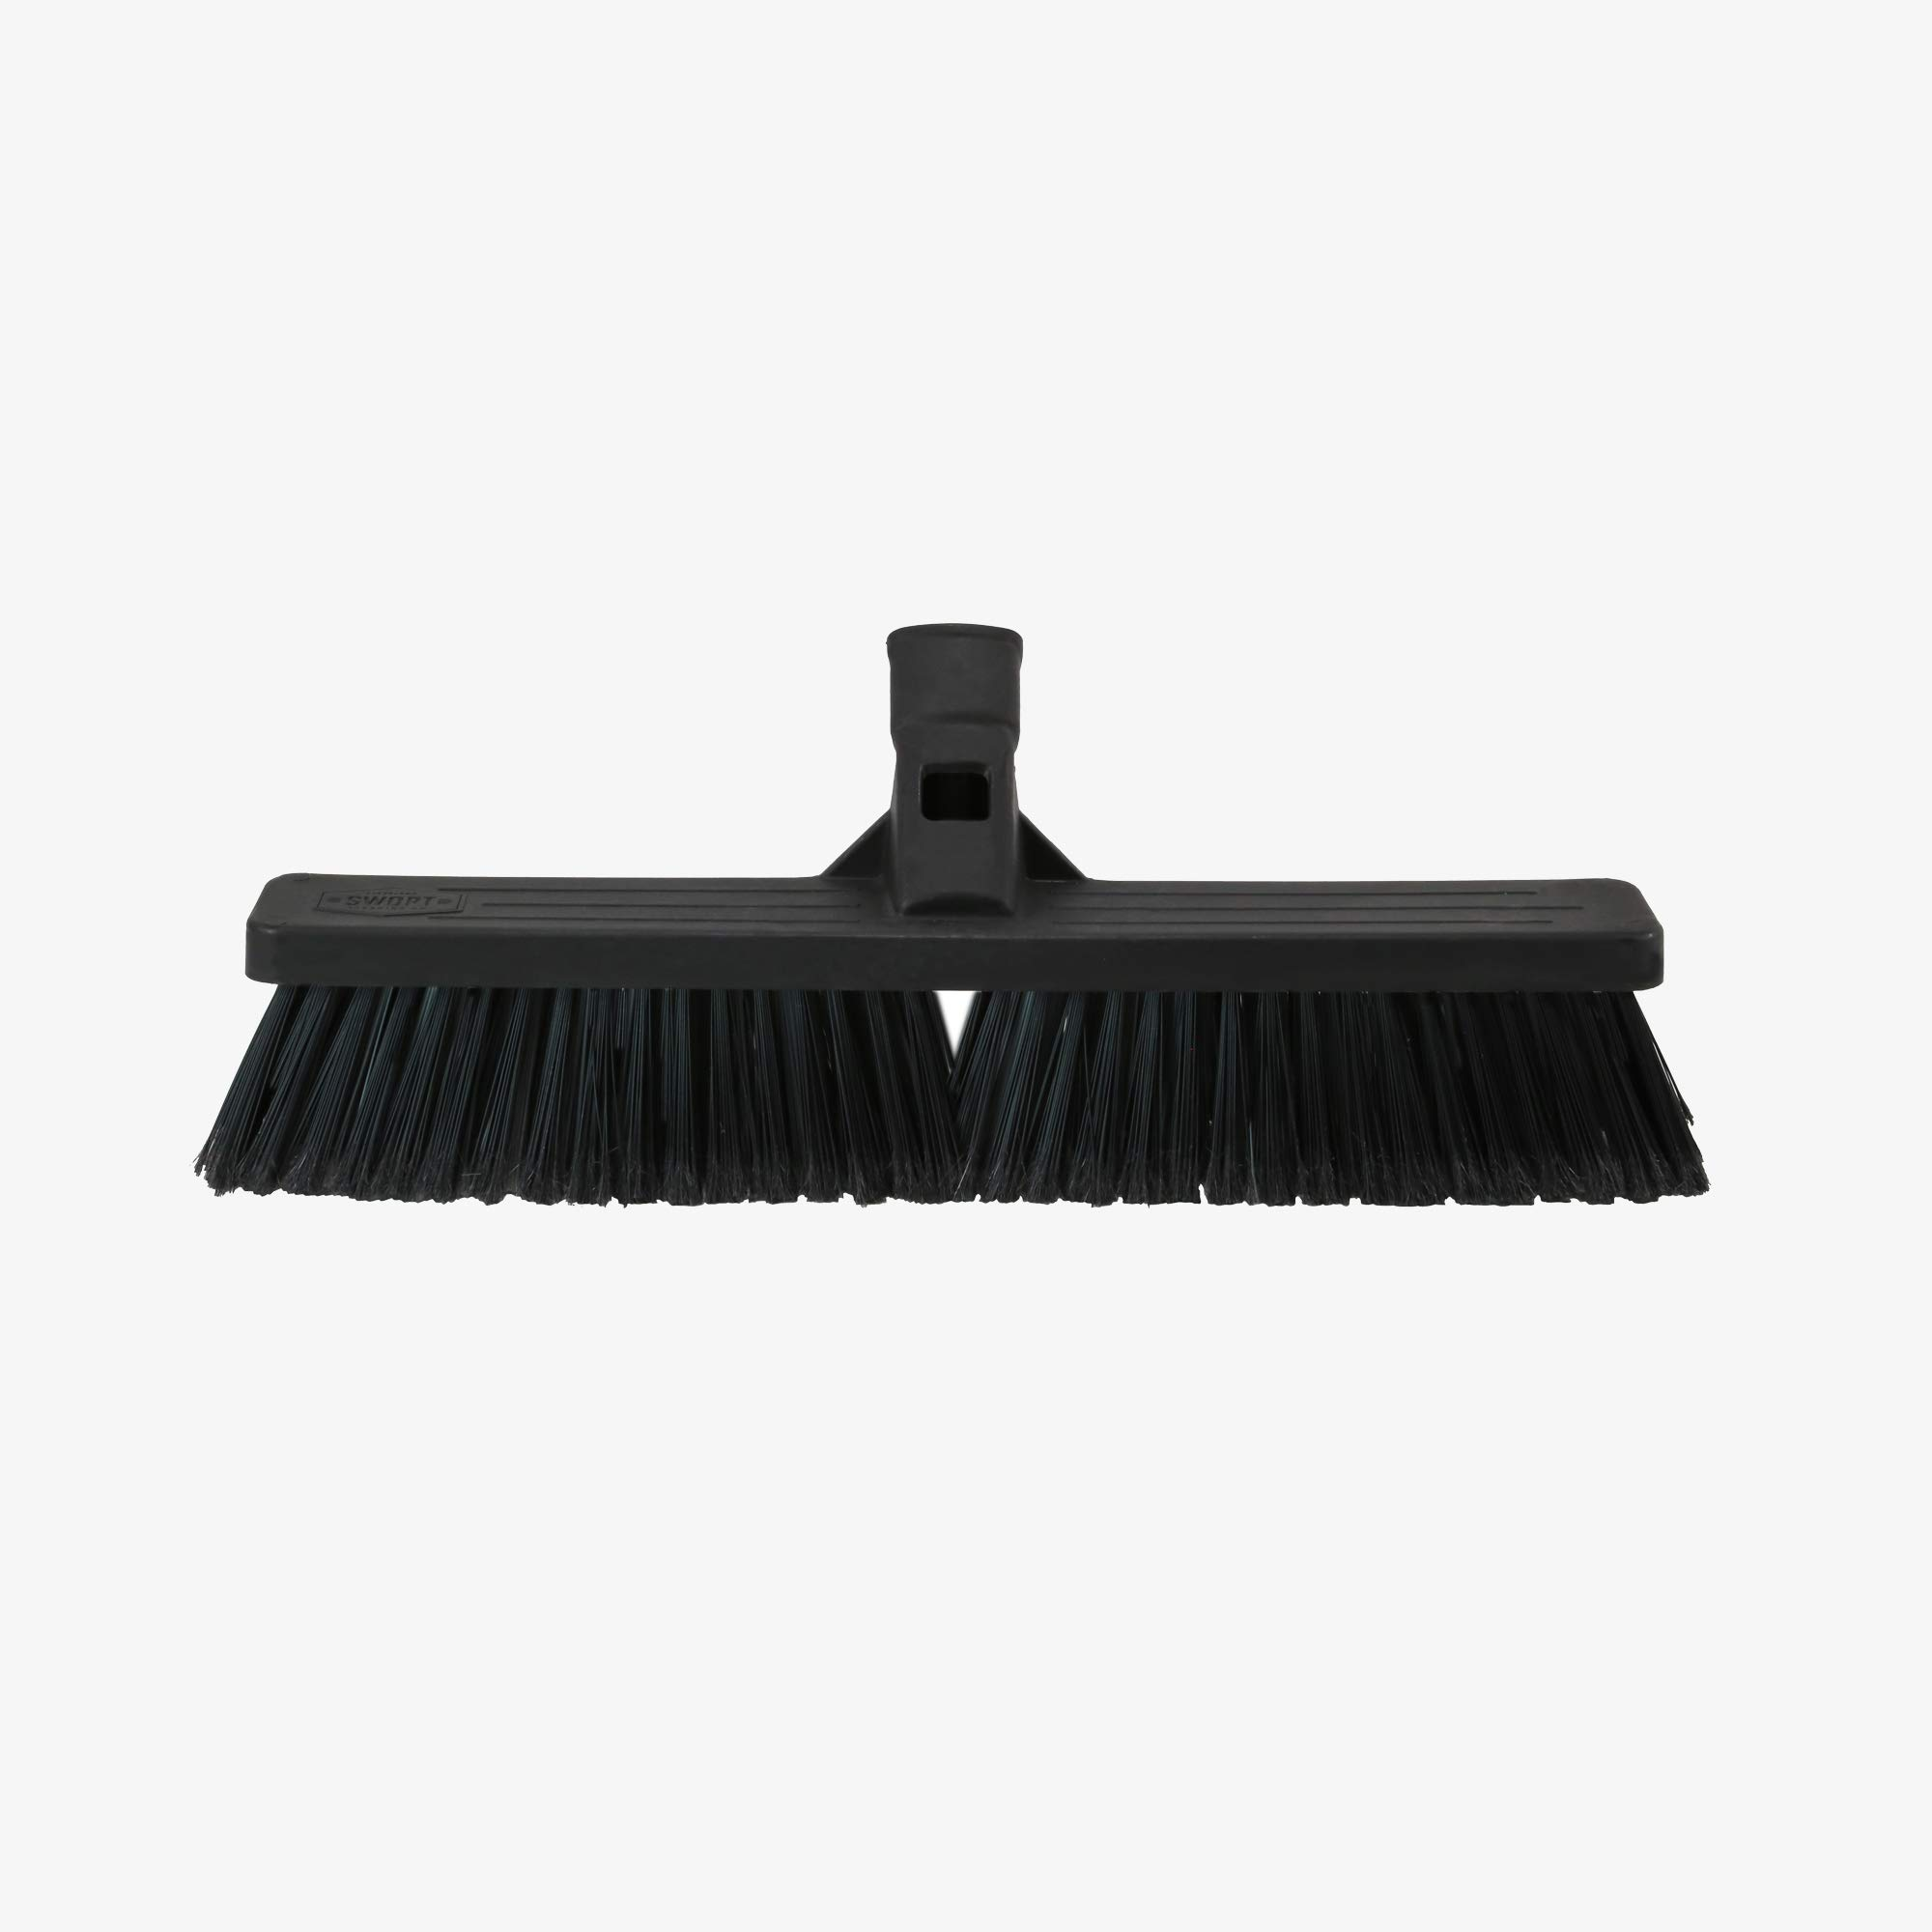 Swopt 5137C4 SWOPT 18 Standard Multi-Surface Push Broom Head, Push Broom for Indoor and Outdoor Use